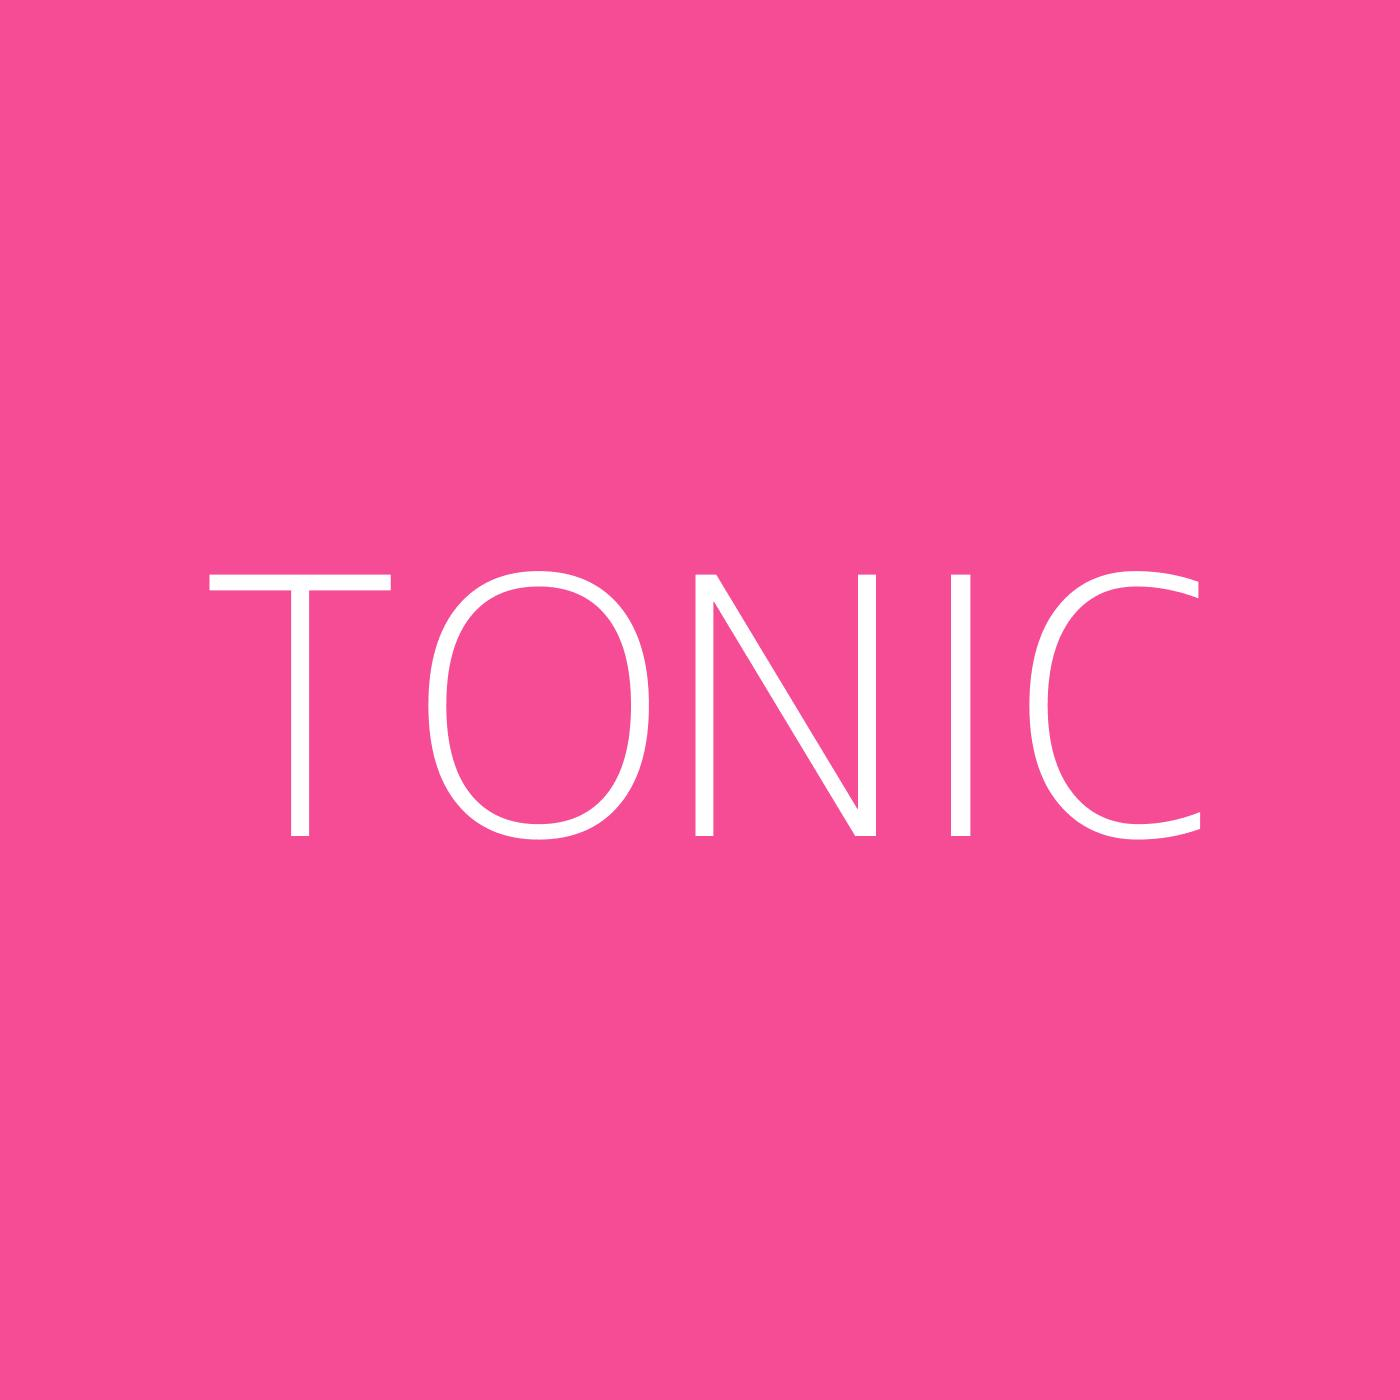 Tonic Playlist Artwork